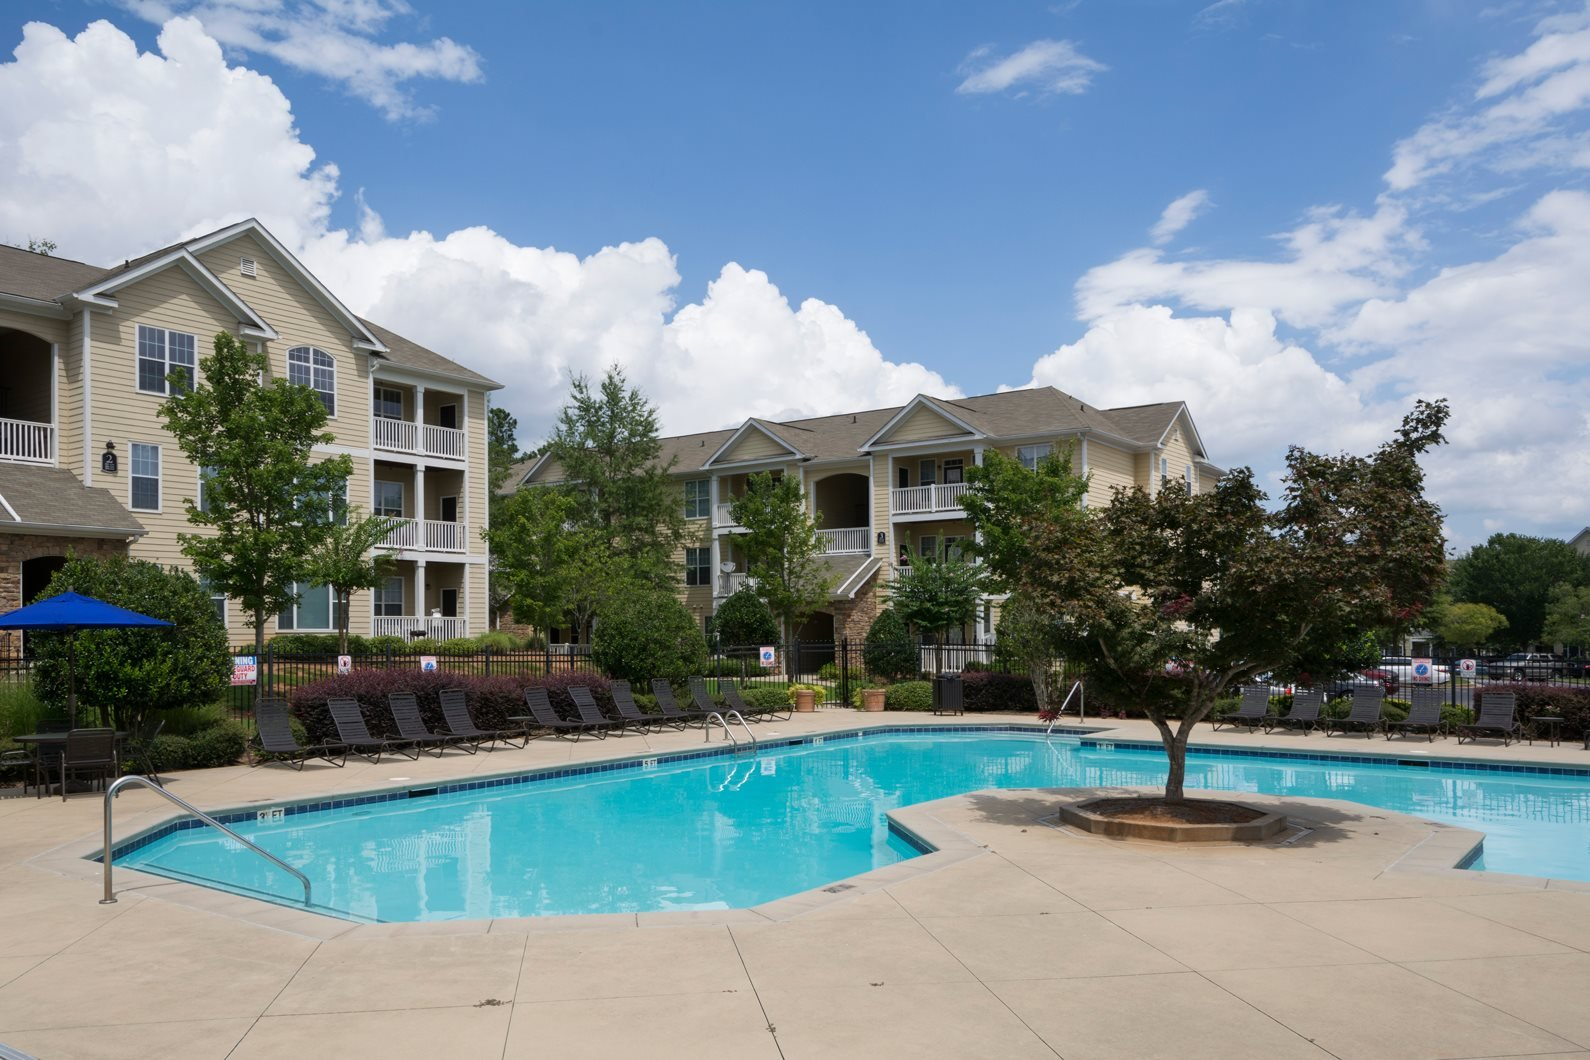 Creekside Vista Apartment Homes Apartments In Decatur Ga